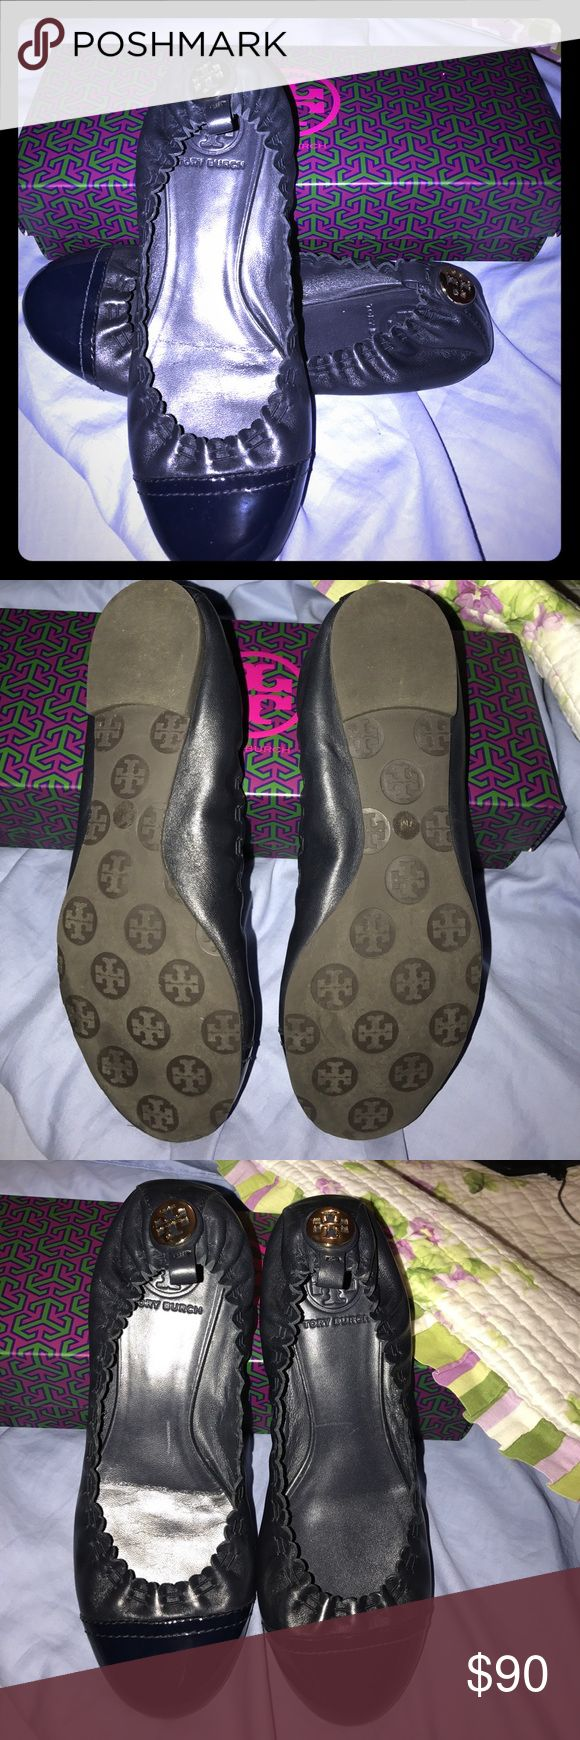 Tory Burch Navy Ballet flats Gorgeous Flats In like new condition worn once but I need a half size bigger. Not the original box but will include this box if desired. :) no lowball offers please. Tory Burch Shoes Flats & Loafers